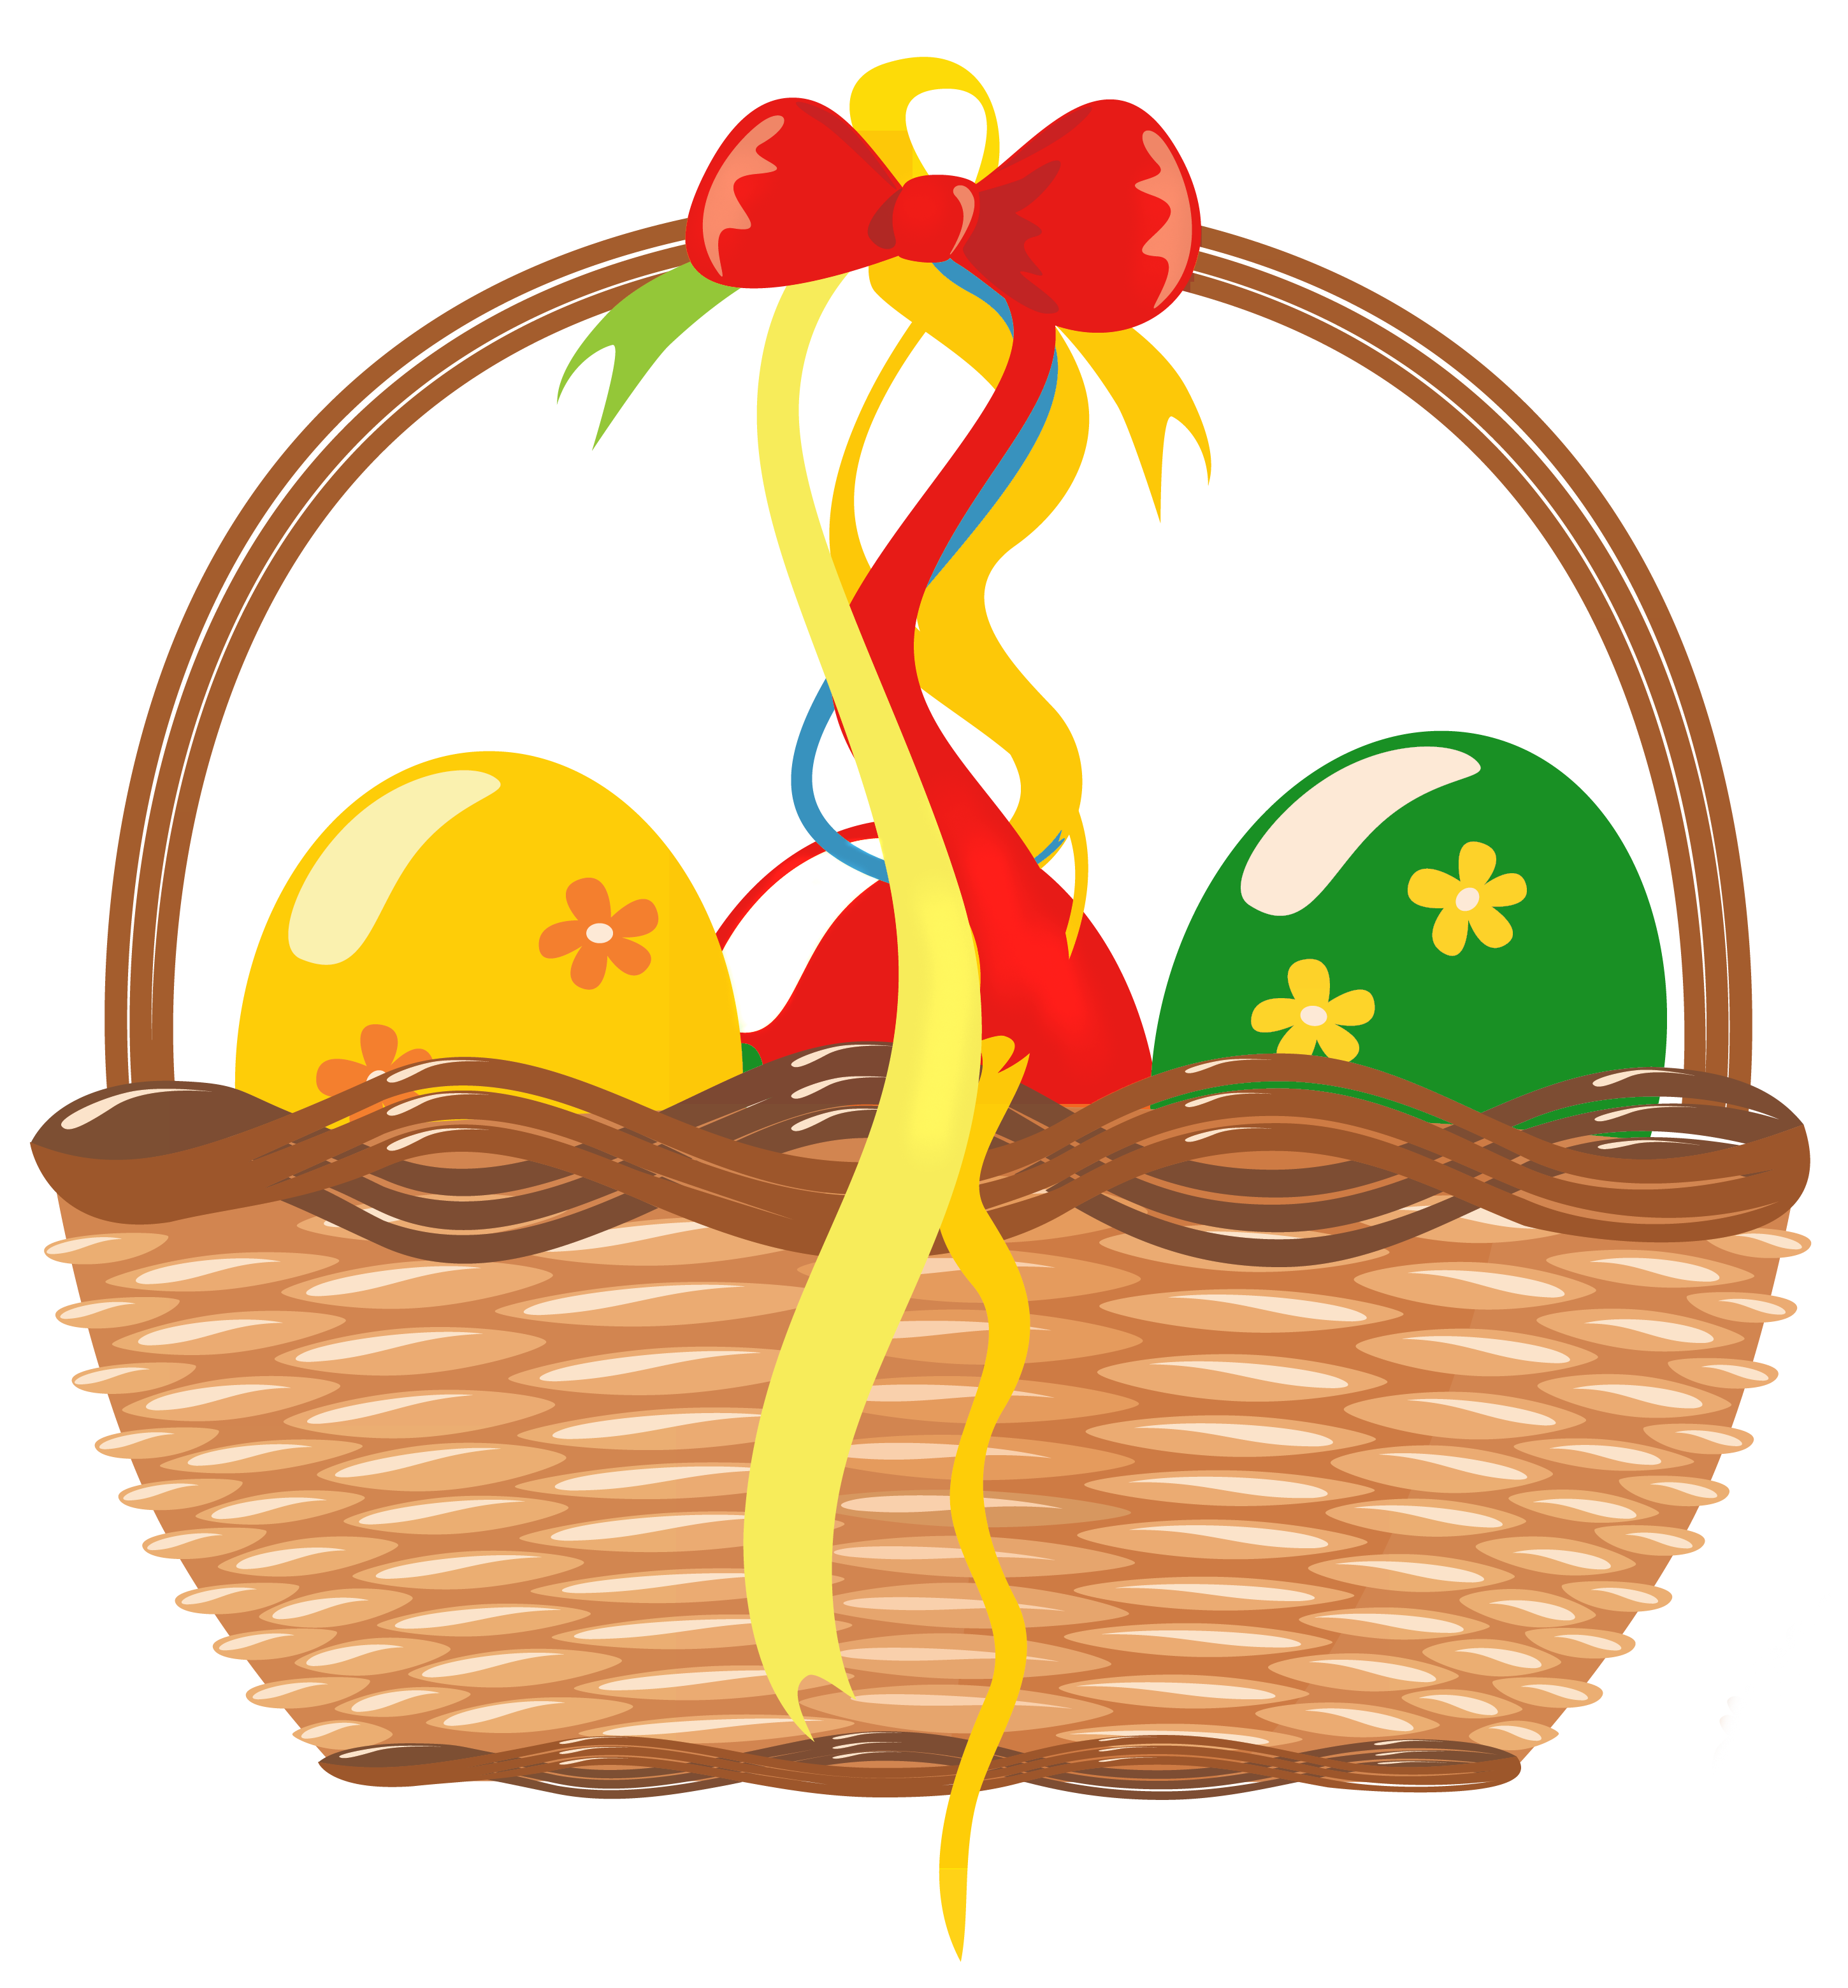 T basket clipart free images 6